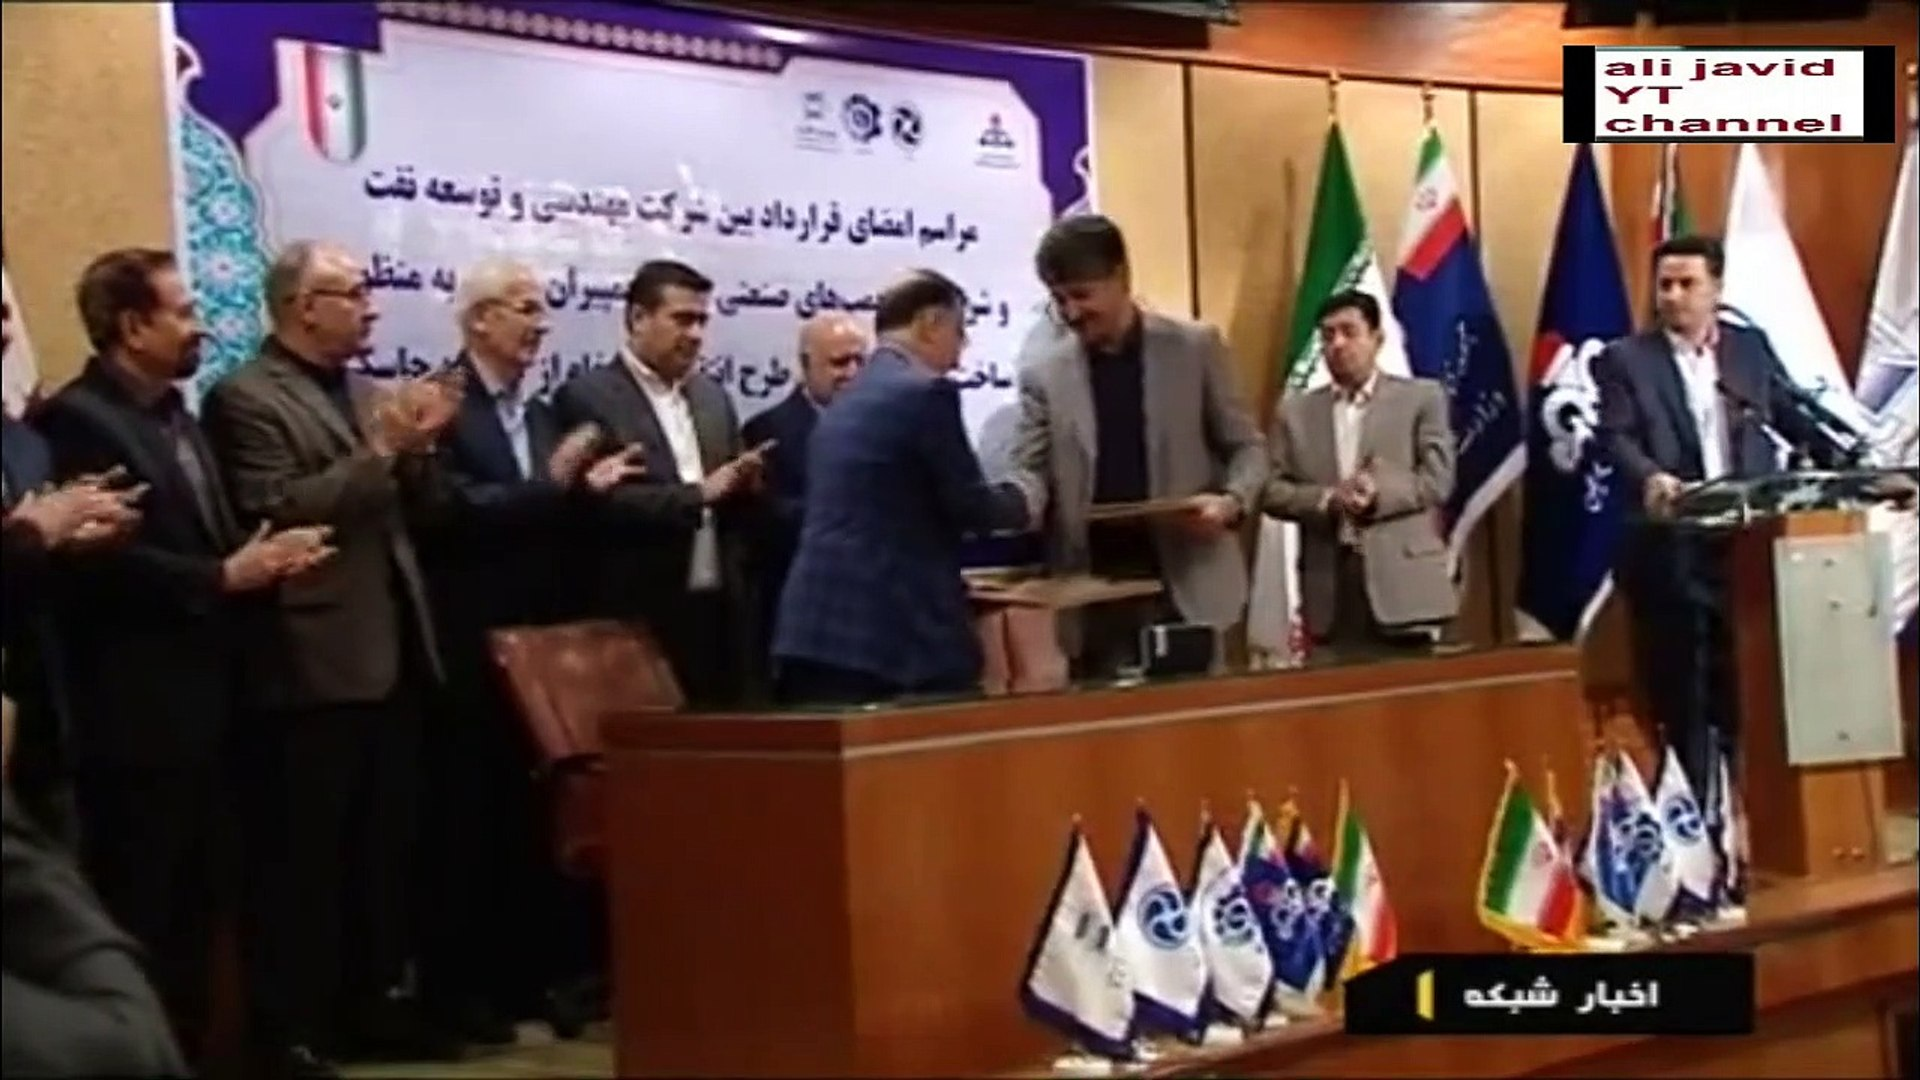 Iran West to East Oman sea pipeline & new oil export terminal ایران خط لوله نفت از غرب به دریای